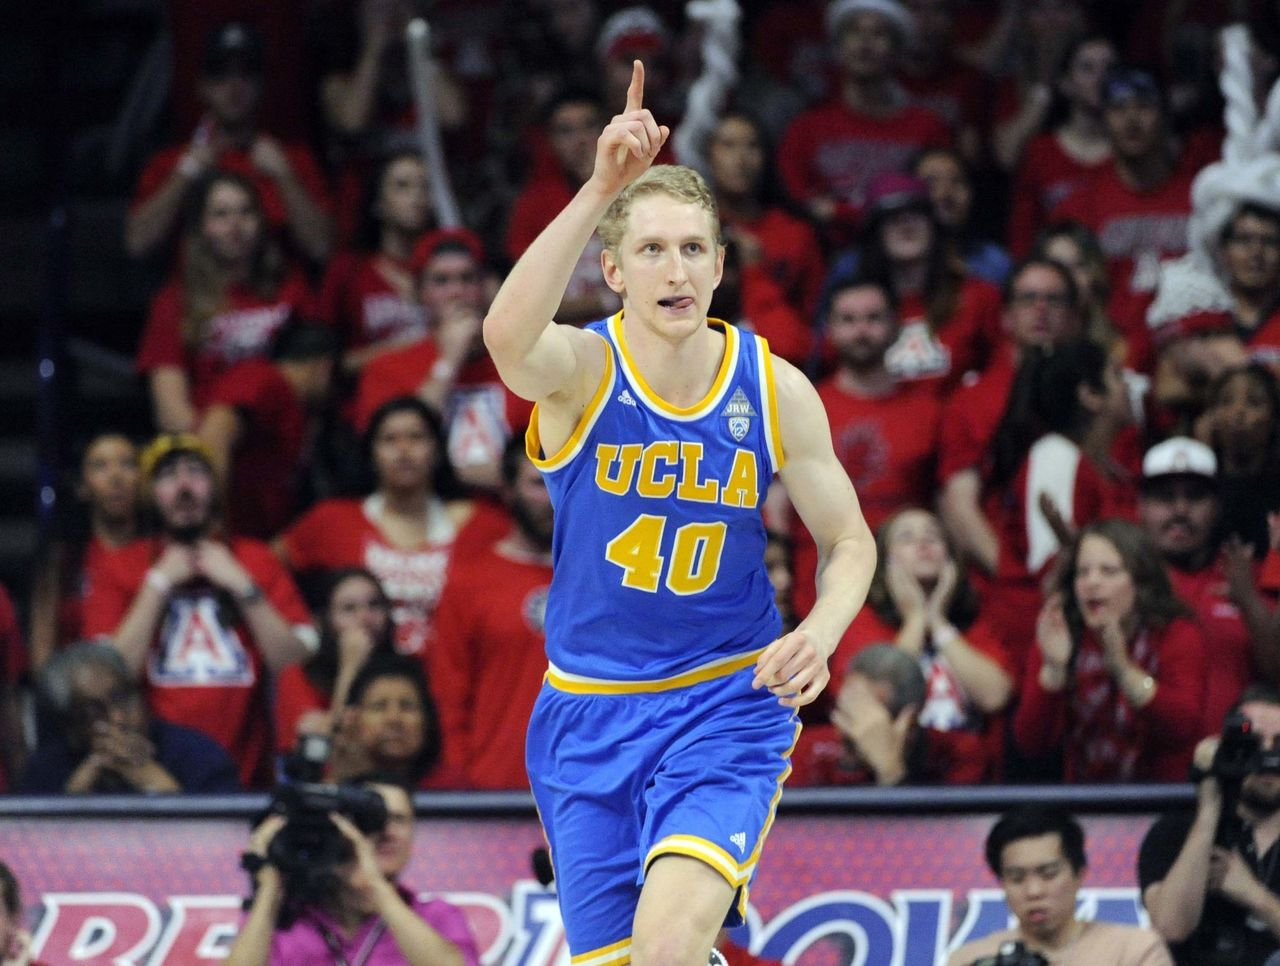 Cropped 2017 02 26t034125z 404094222 nocid rtrmadp 3 ncaa basketball ucla at arizona